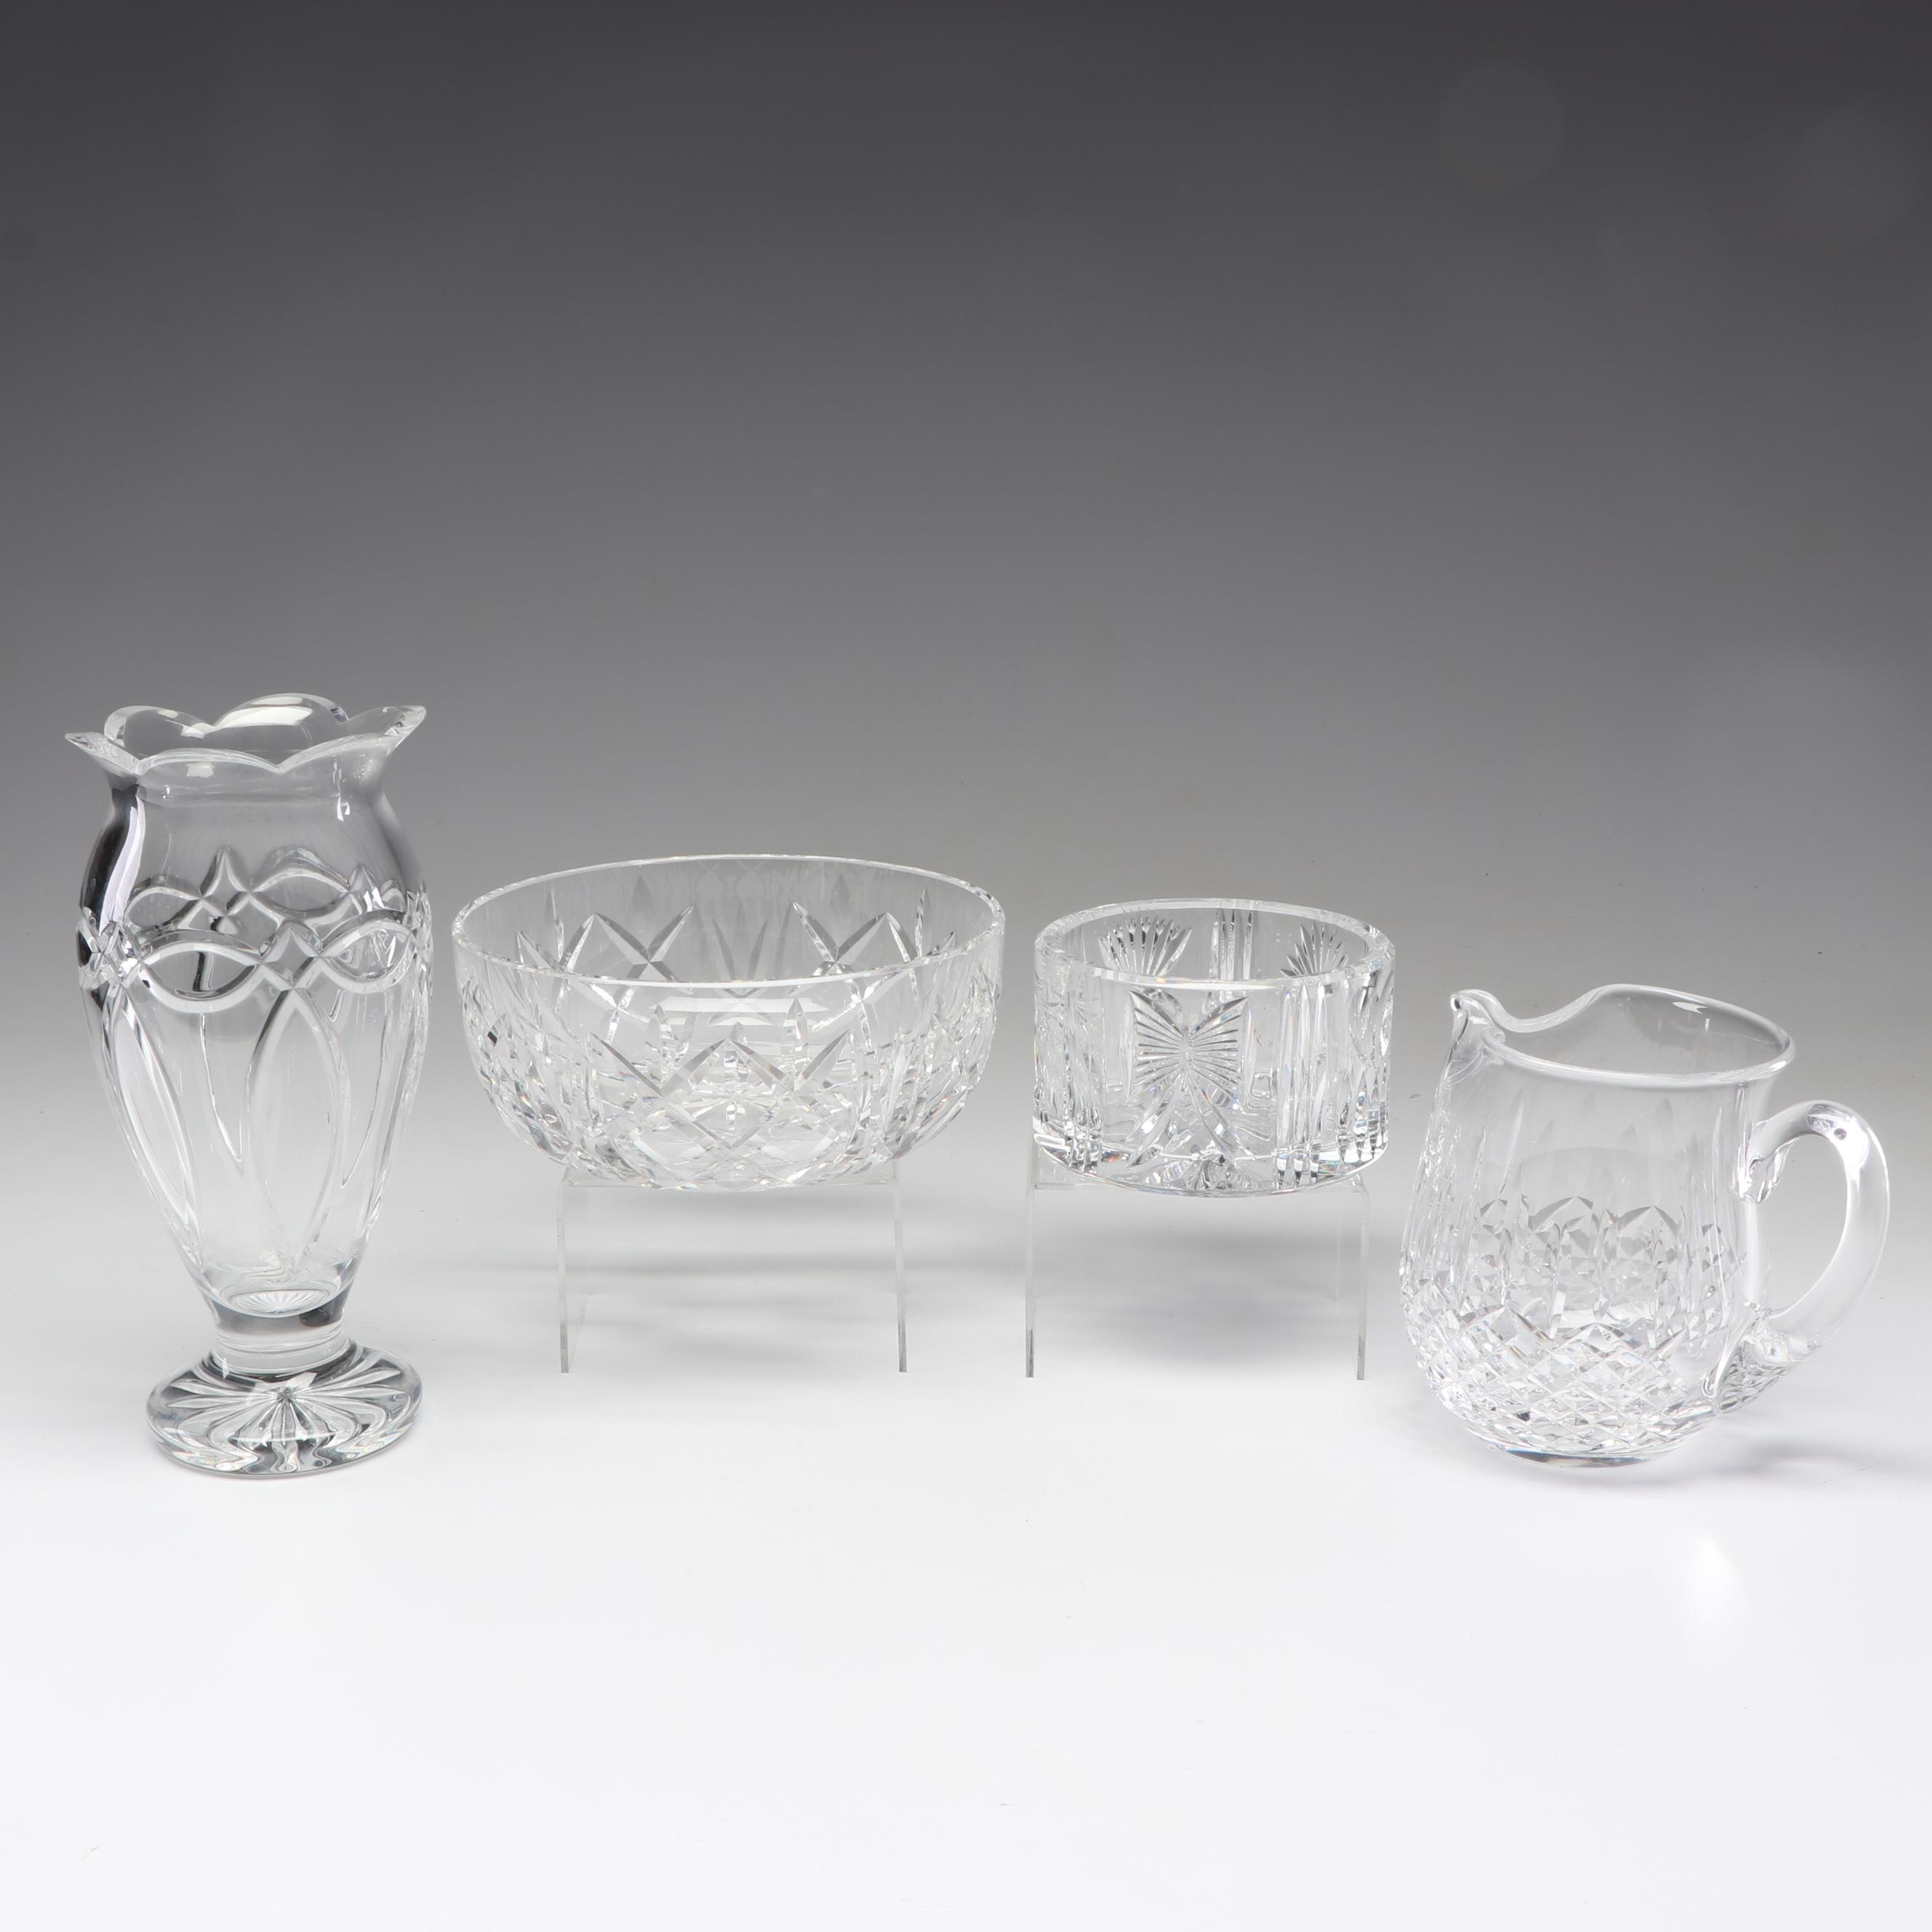 """Waterford Crystal Decor with """"Lismore"""", """"Millenium"""" and """"Clannad"""""""